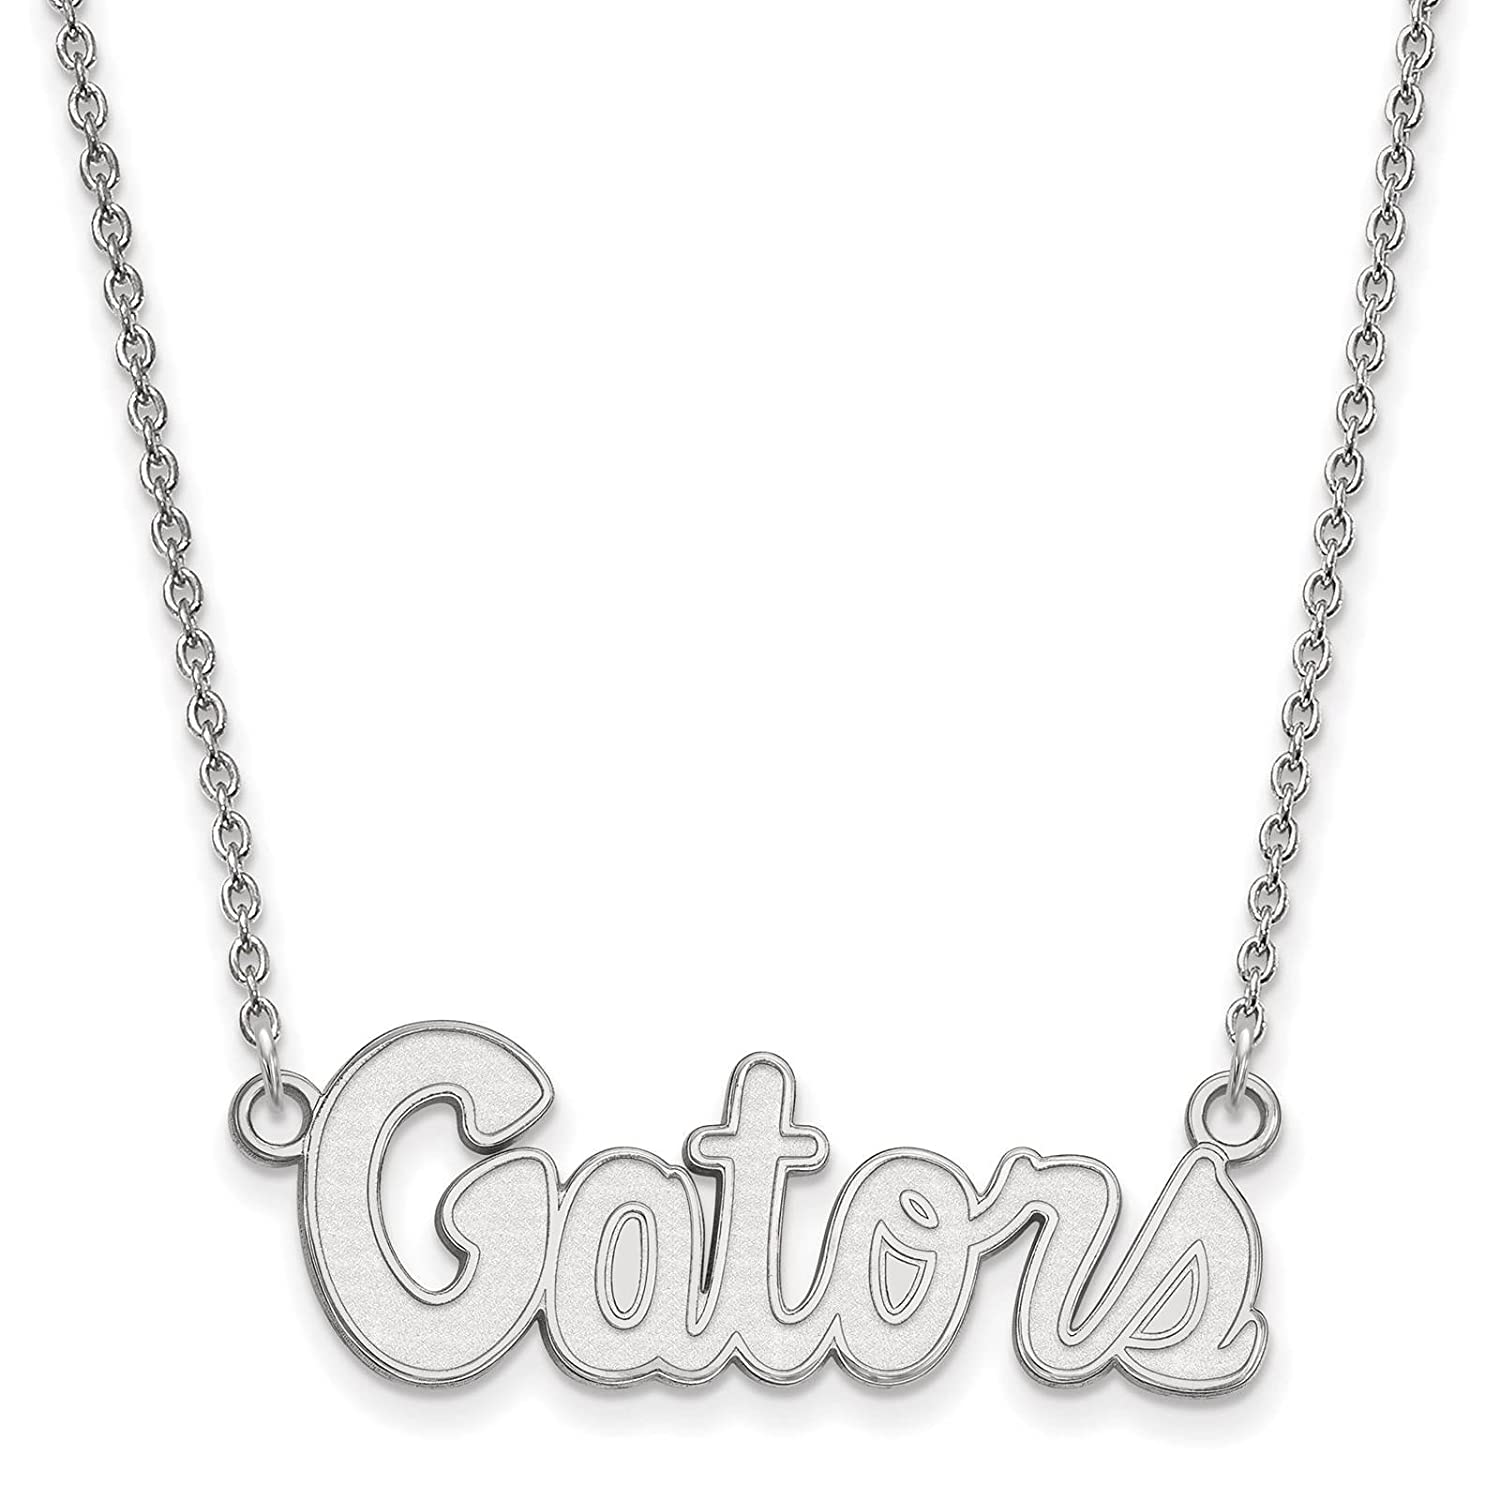 925 Sterling Silver Rhodium-plated Laser-cut University of Florida Small Pendant w//Necklace 18